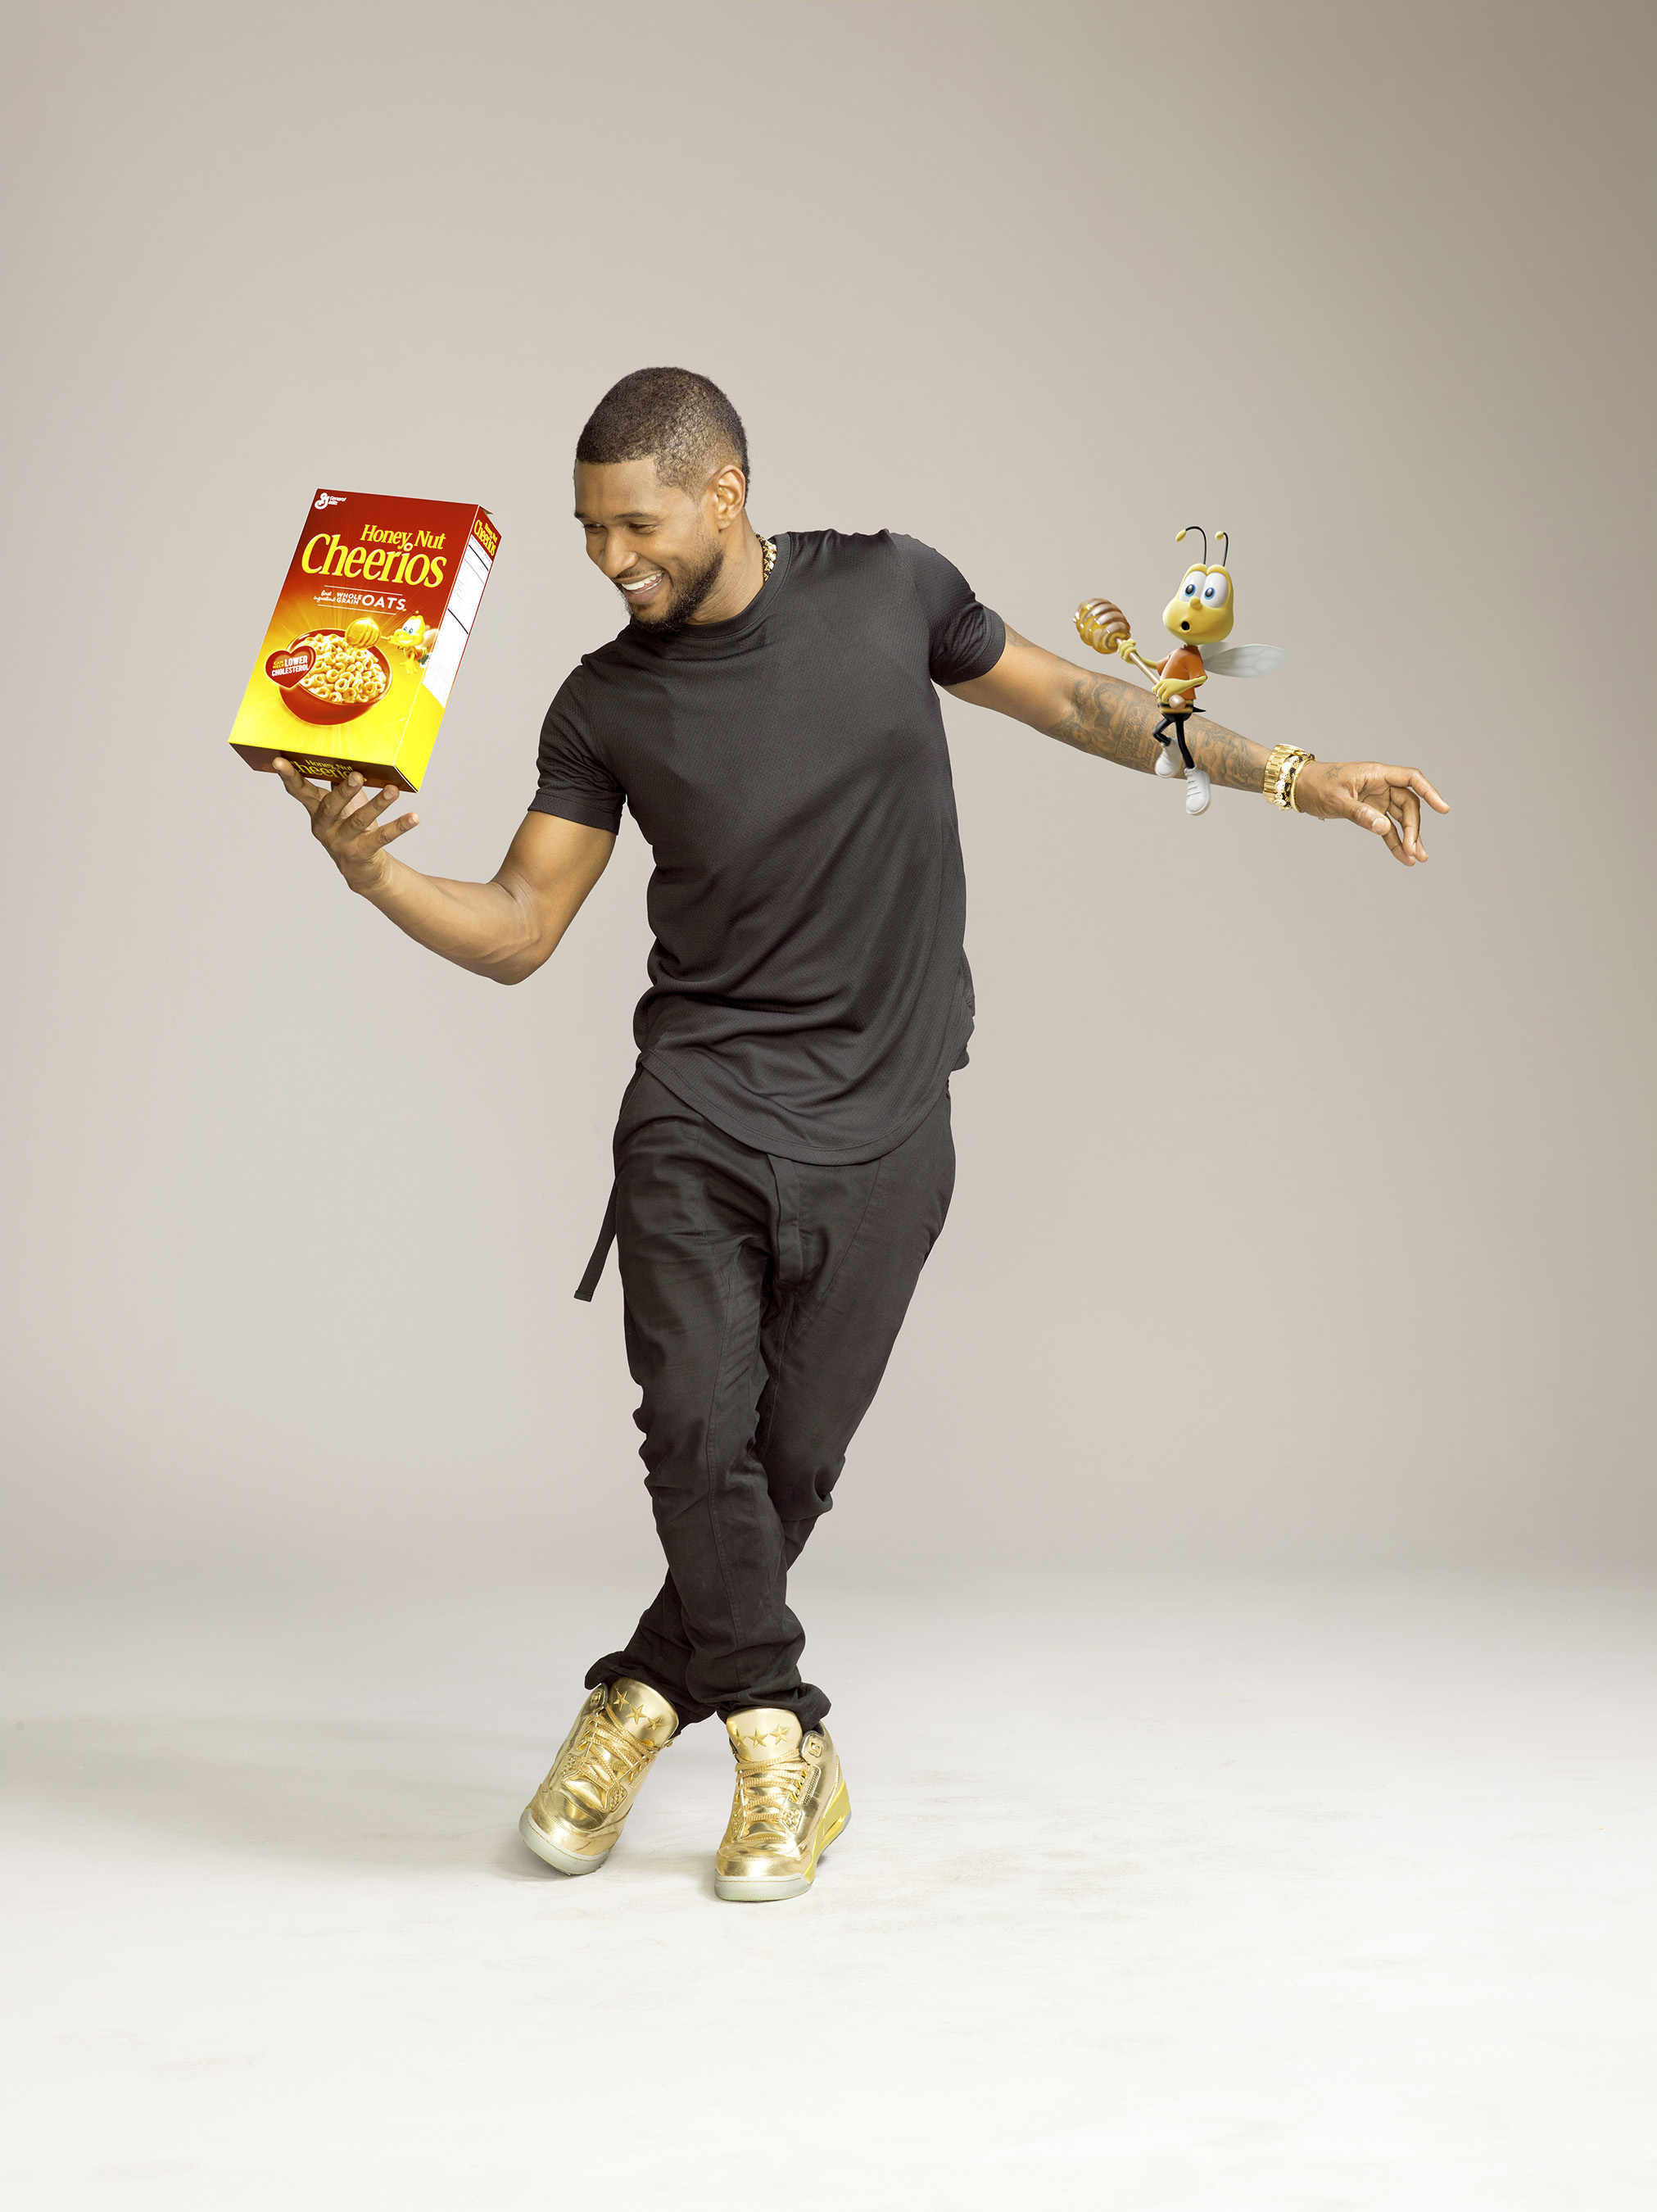 http://www.multivu.com/players/English/7303651-usher-joins-honey-nut-cheerios-bee-happy-and-healthy/gallery/image/1c238482-16f8-4012-88b1-27e1ac8d9e21.HR.jpg